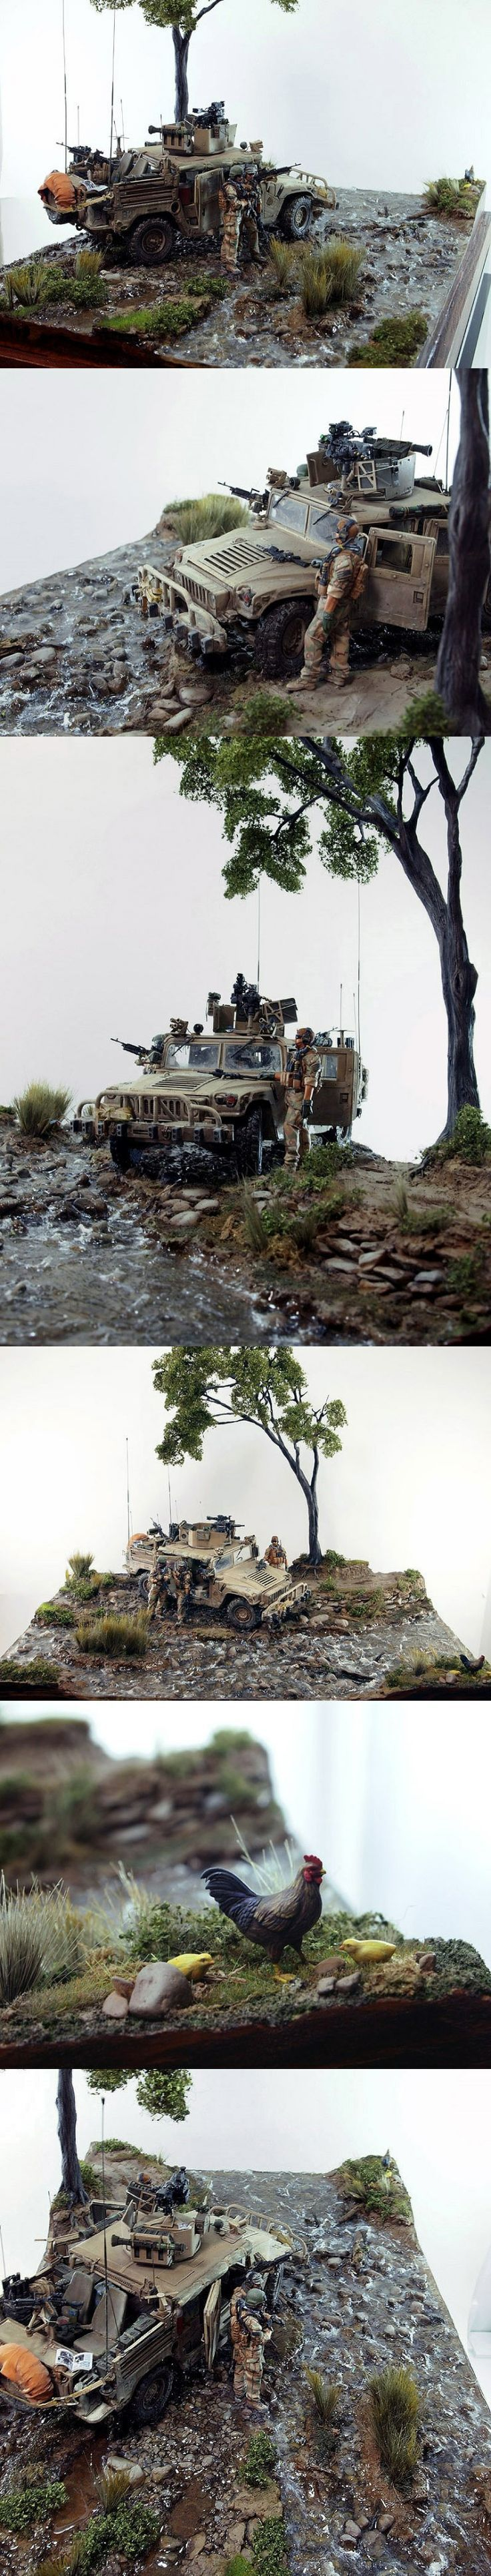 Cool dioramas. Amazing paint jobs!!!! - Page 2 - AR15.COM